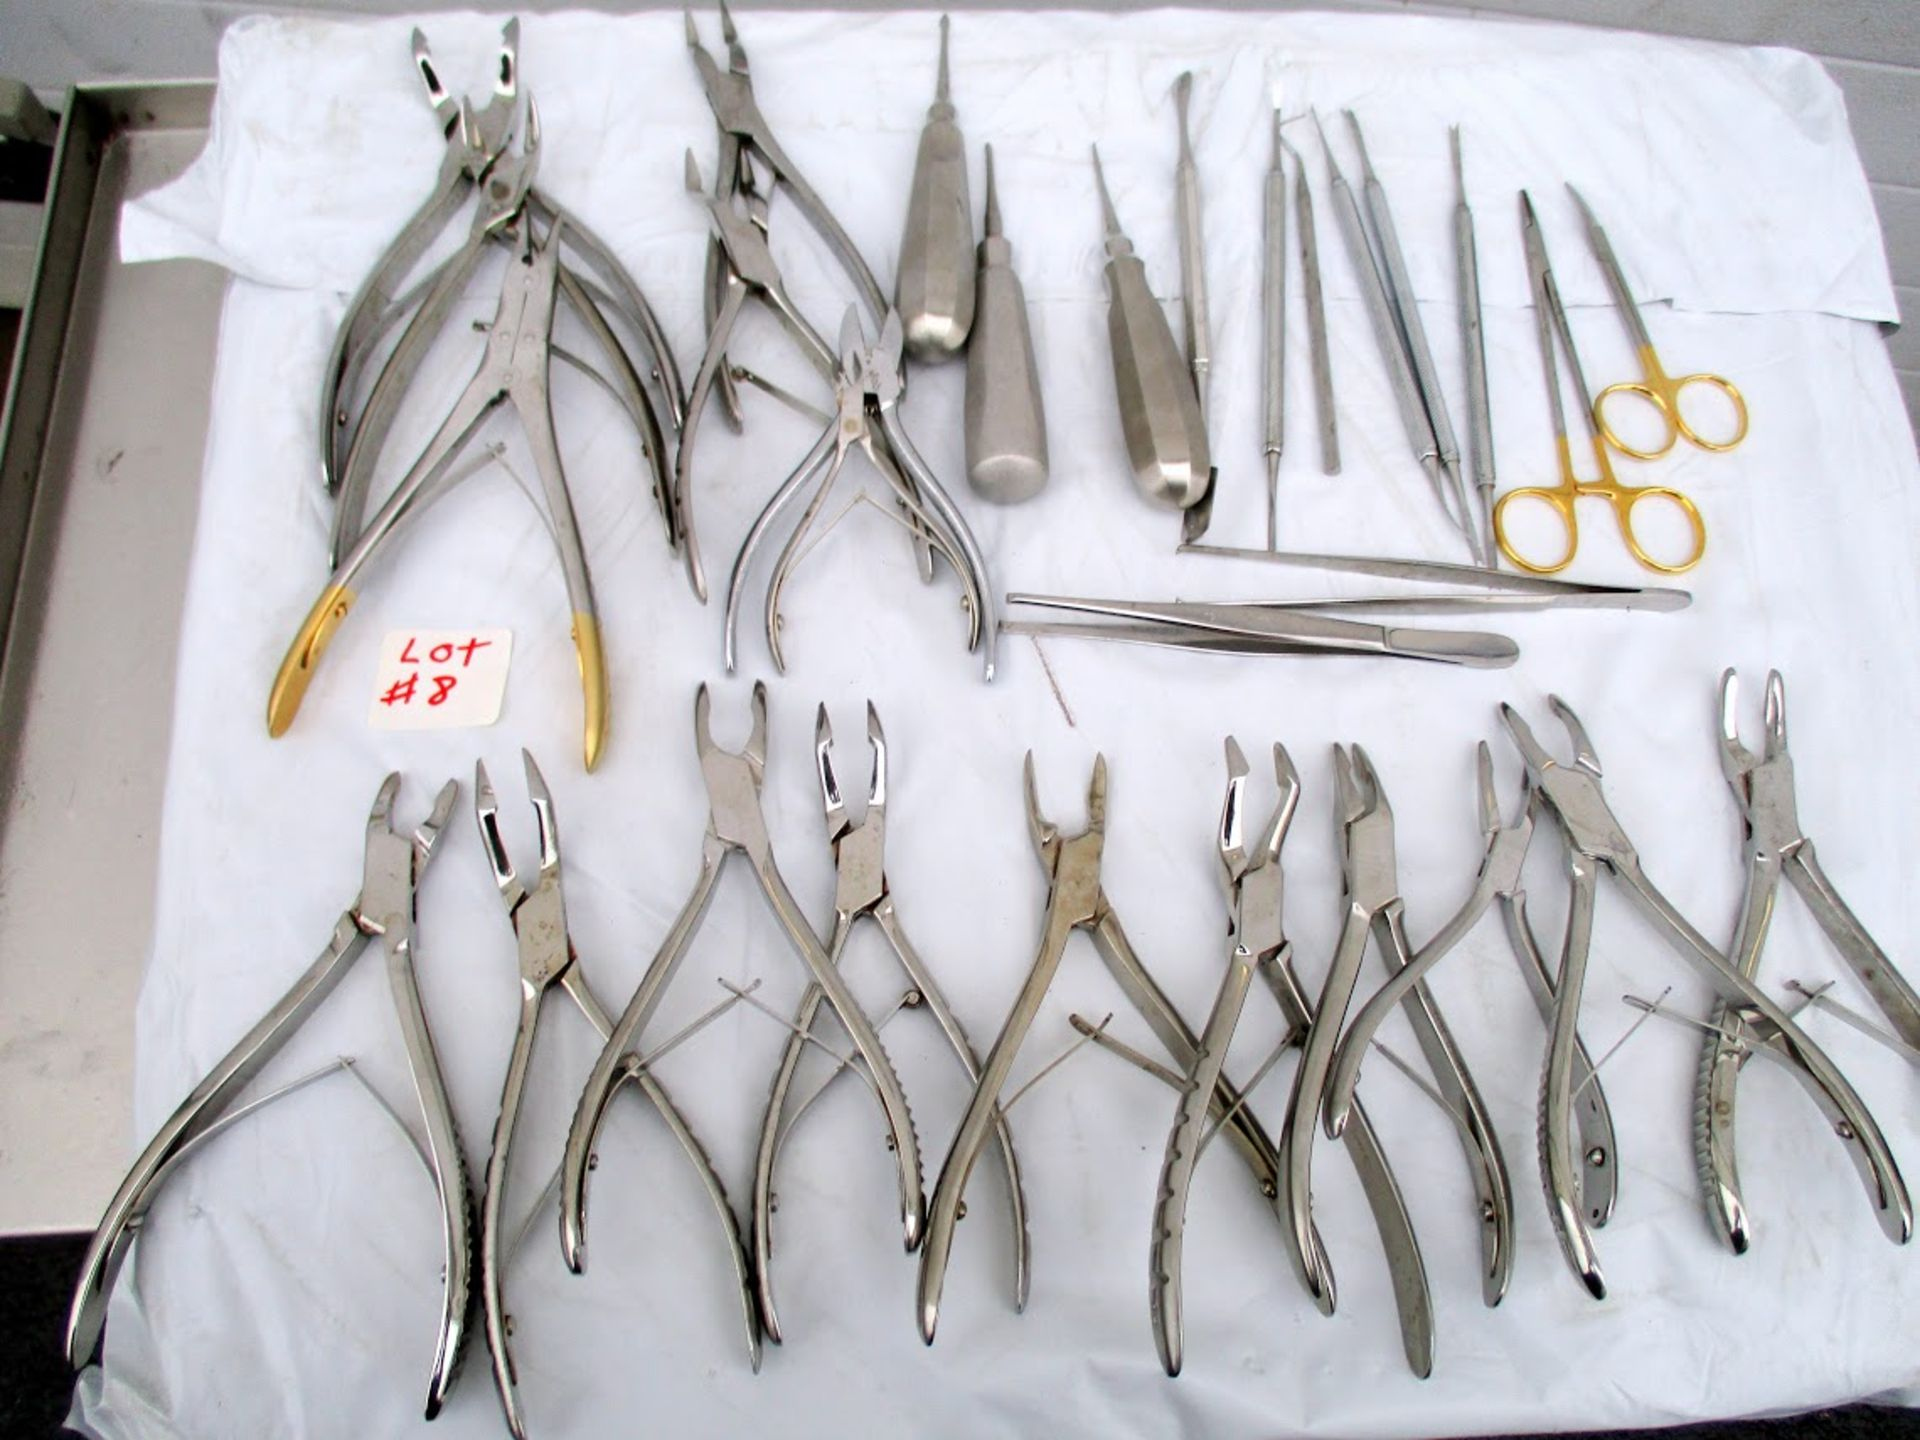 Lot containing 28 Dental Tools. Manufacturers include Ronguers and W. Lorenz